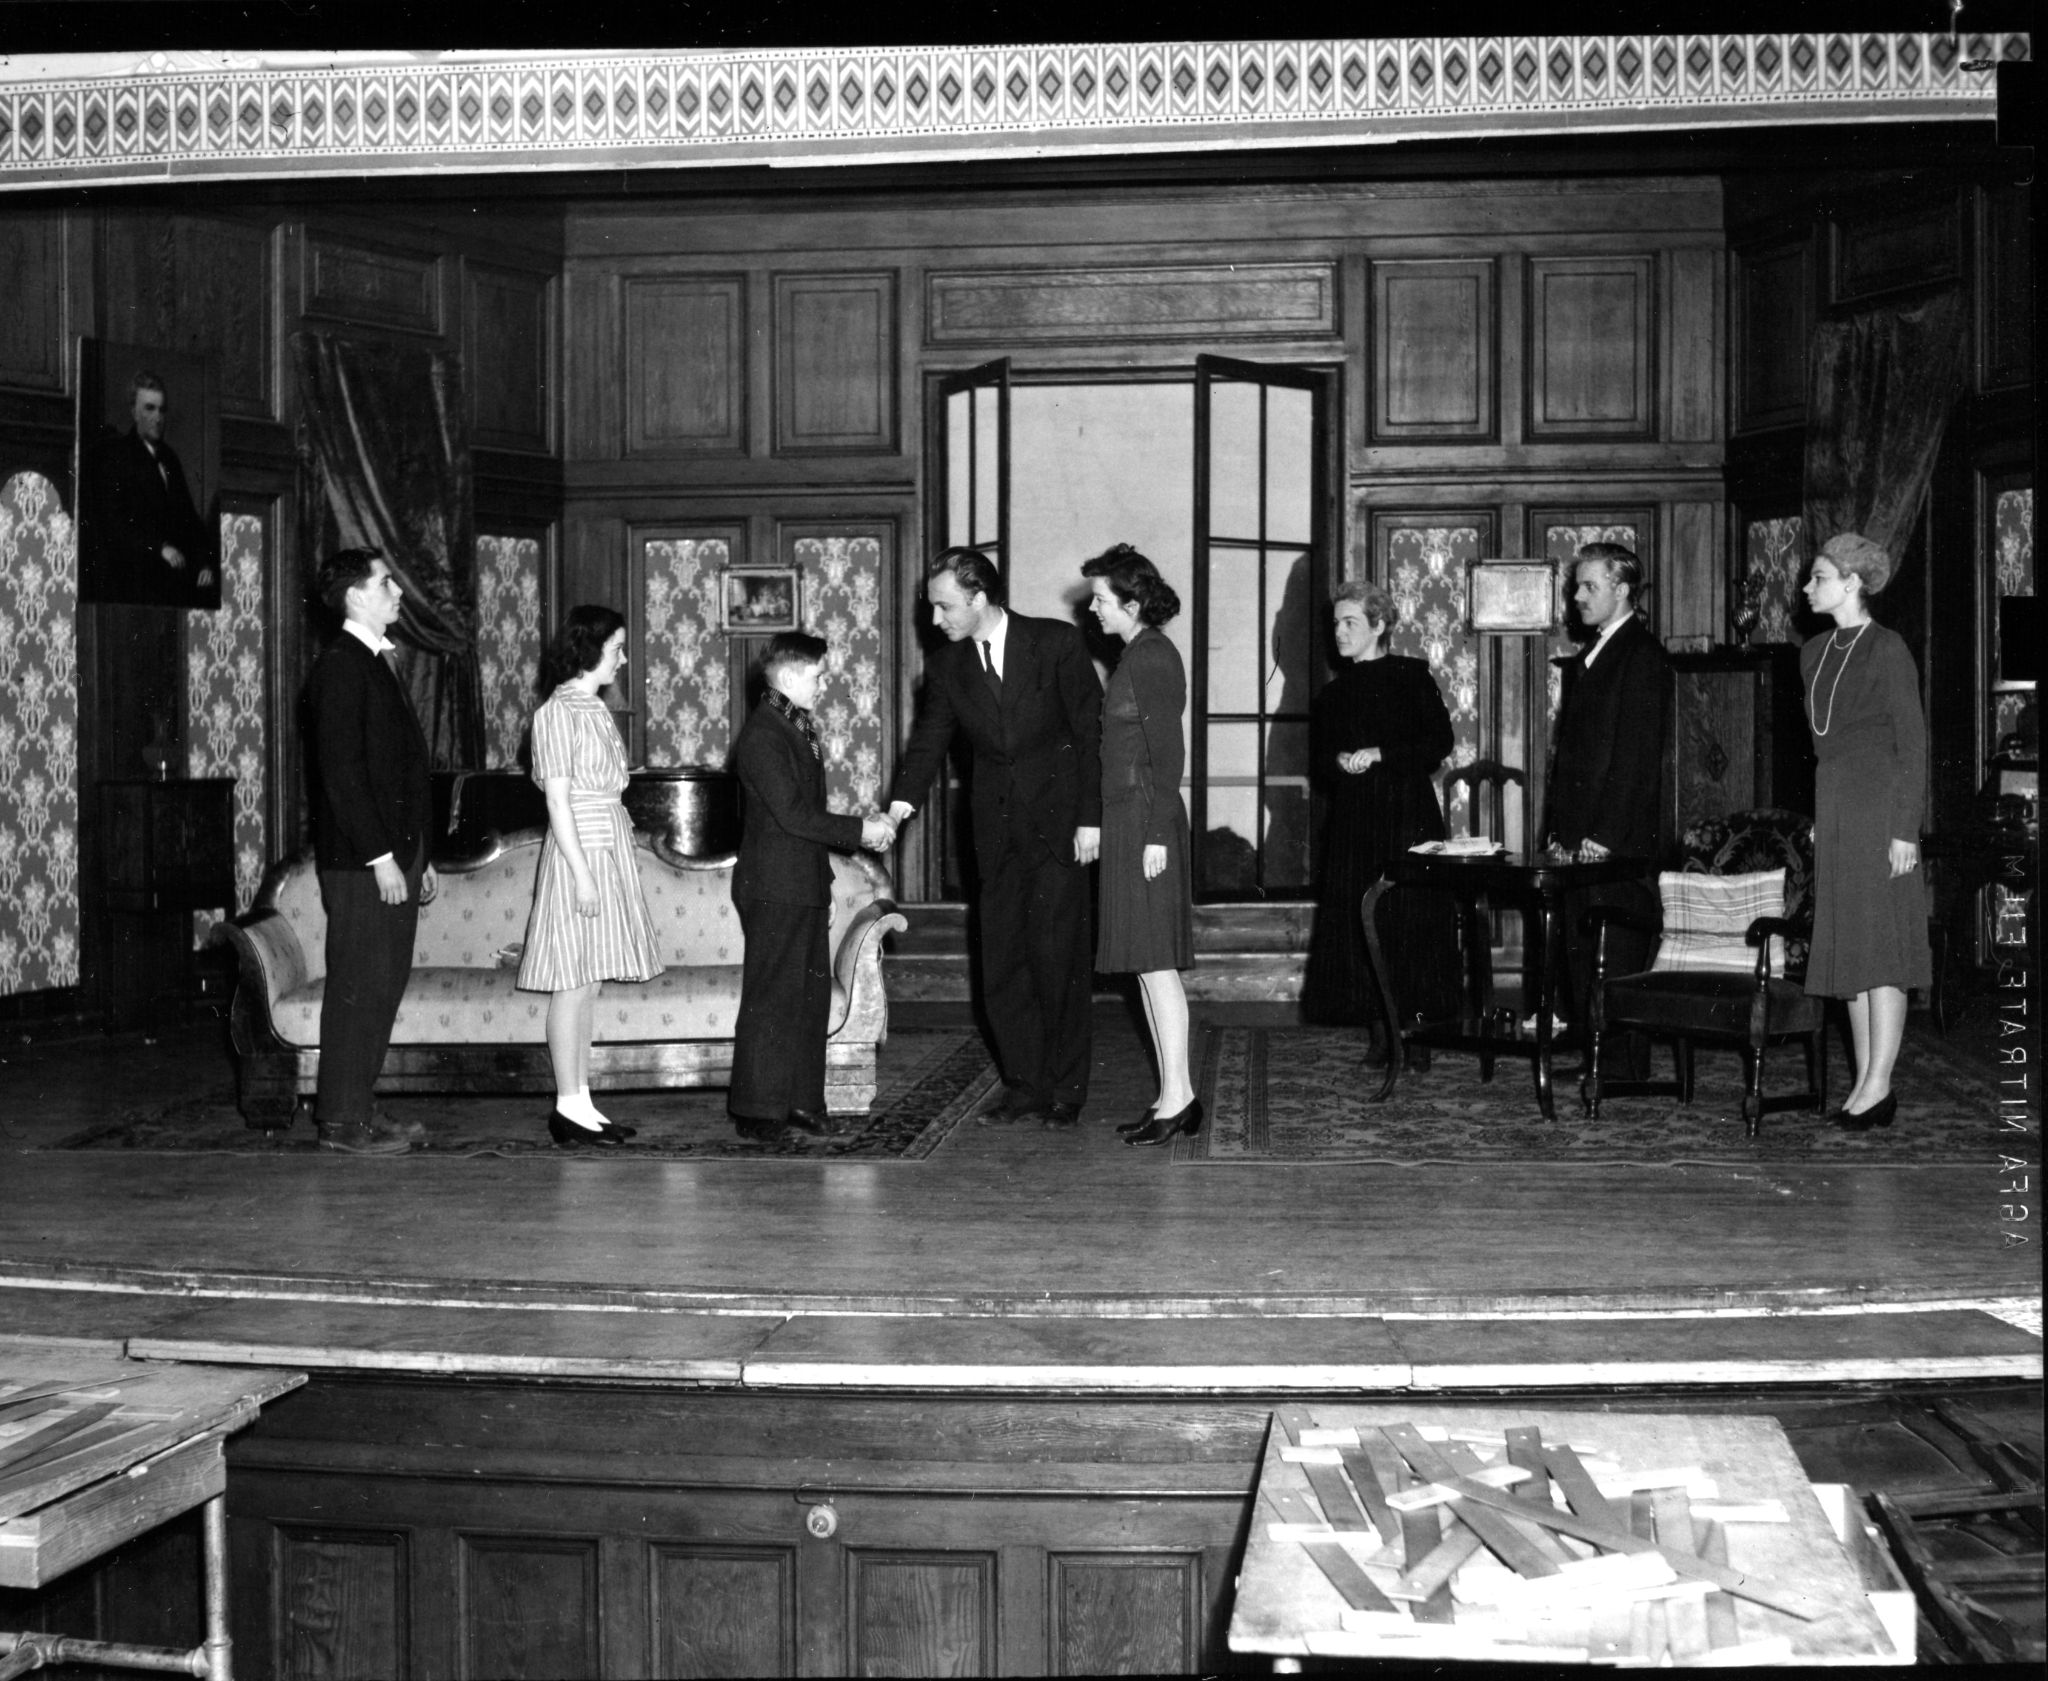 Black and white photo of a play. On stage, a young Caucasian man and woman shake hands with a Caucasian boy in a suit and tie. Several other people look on. The stage is decorated with wood paneling and formal furniture.